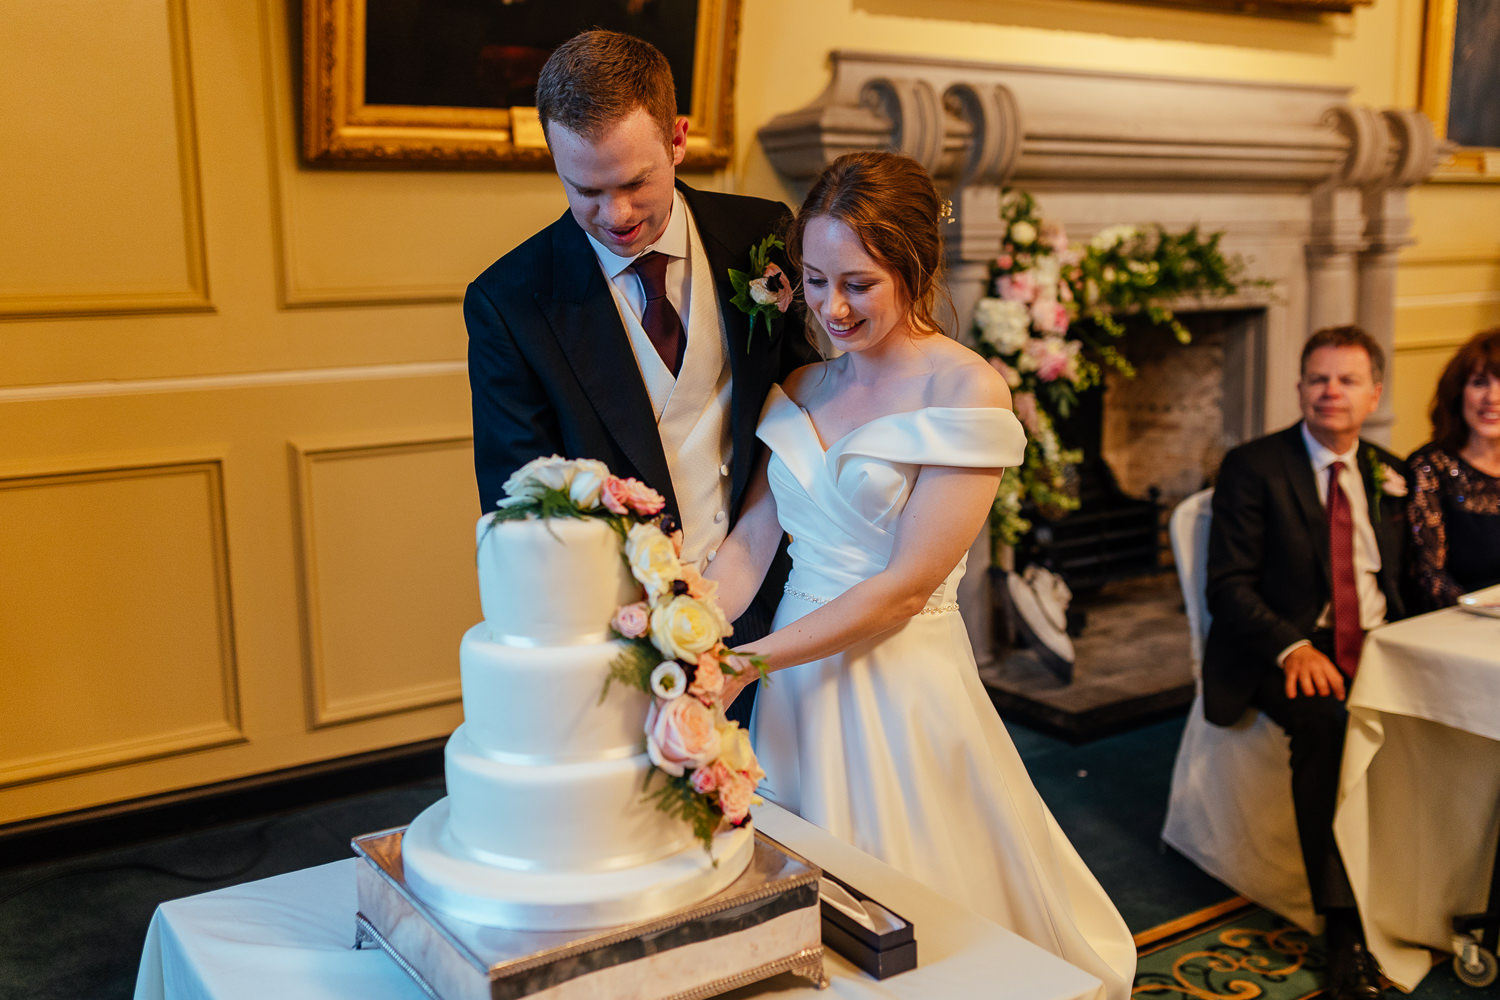 St Andrews Wedding St Salvators Hall Bride Groom Cutting Cake